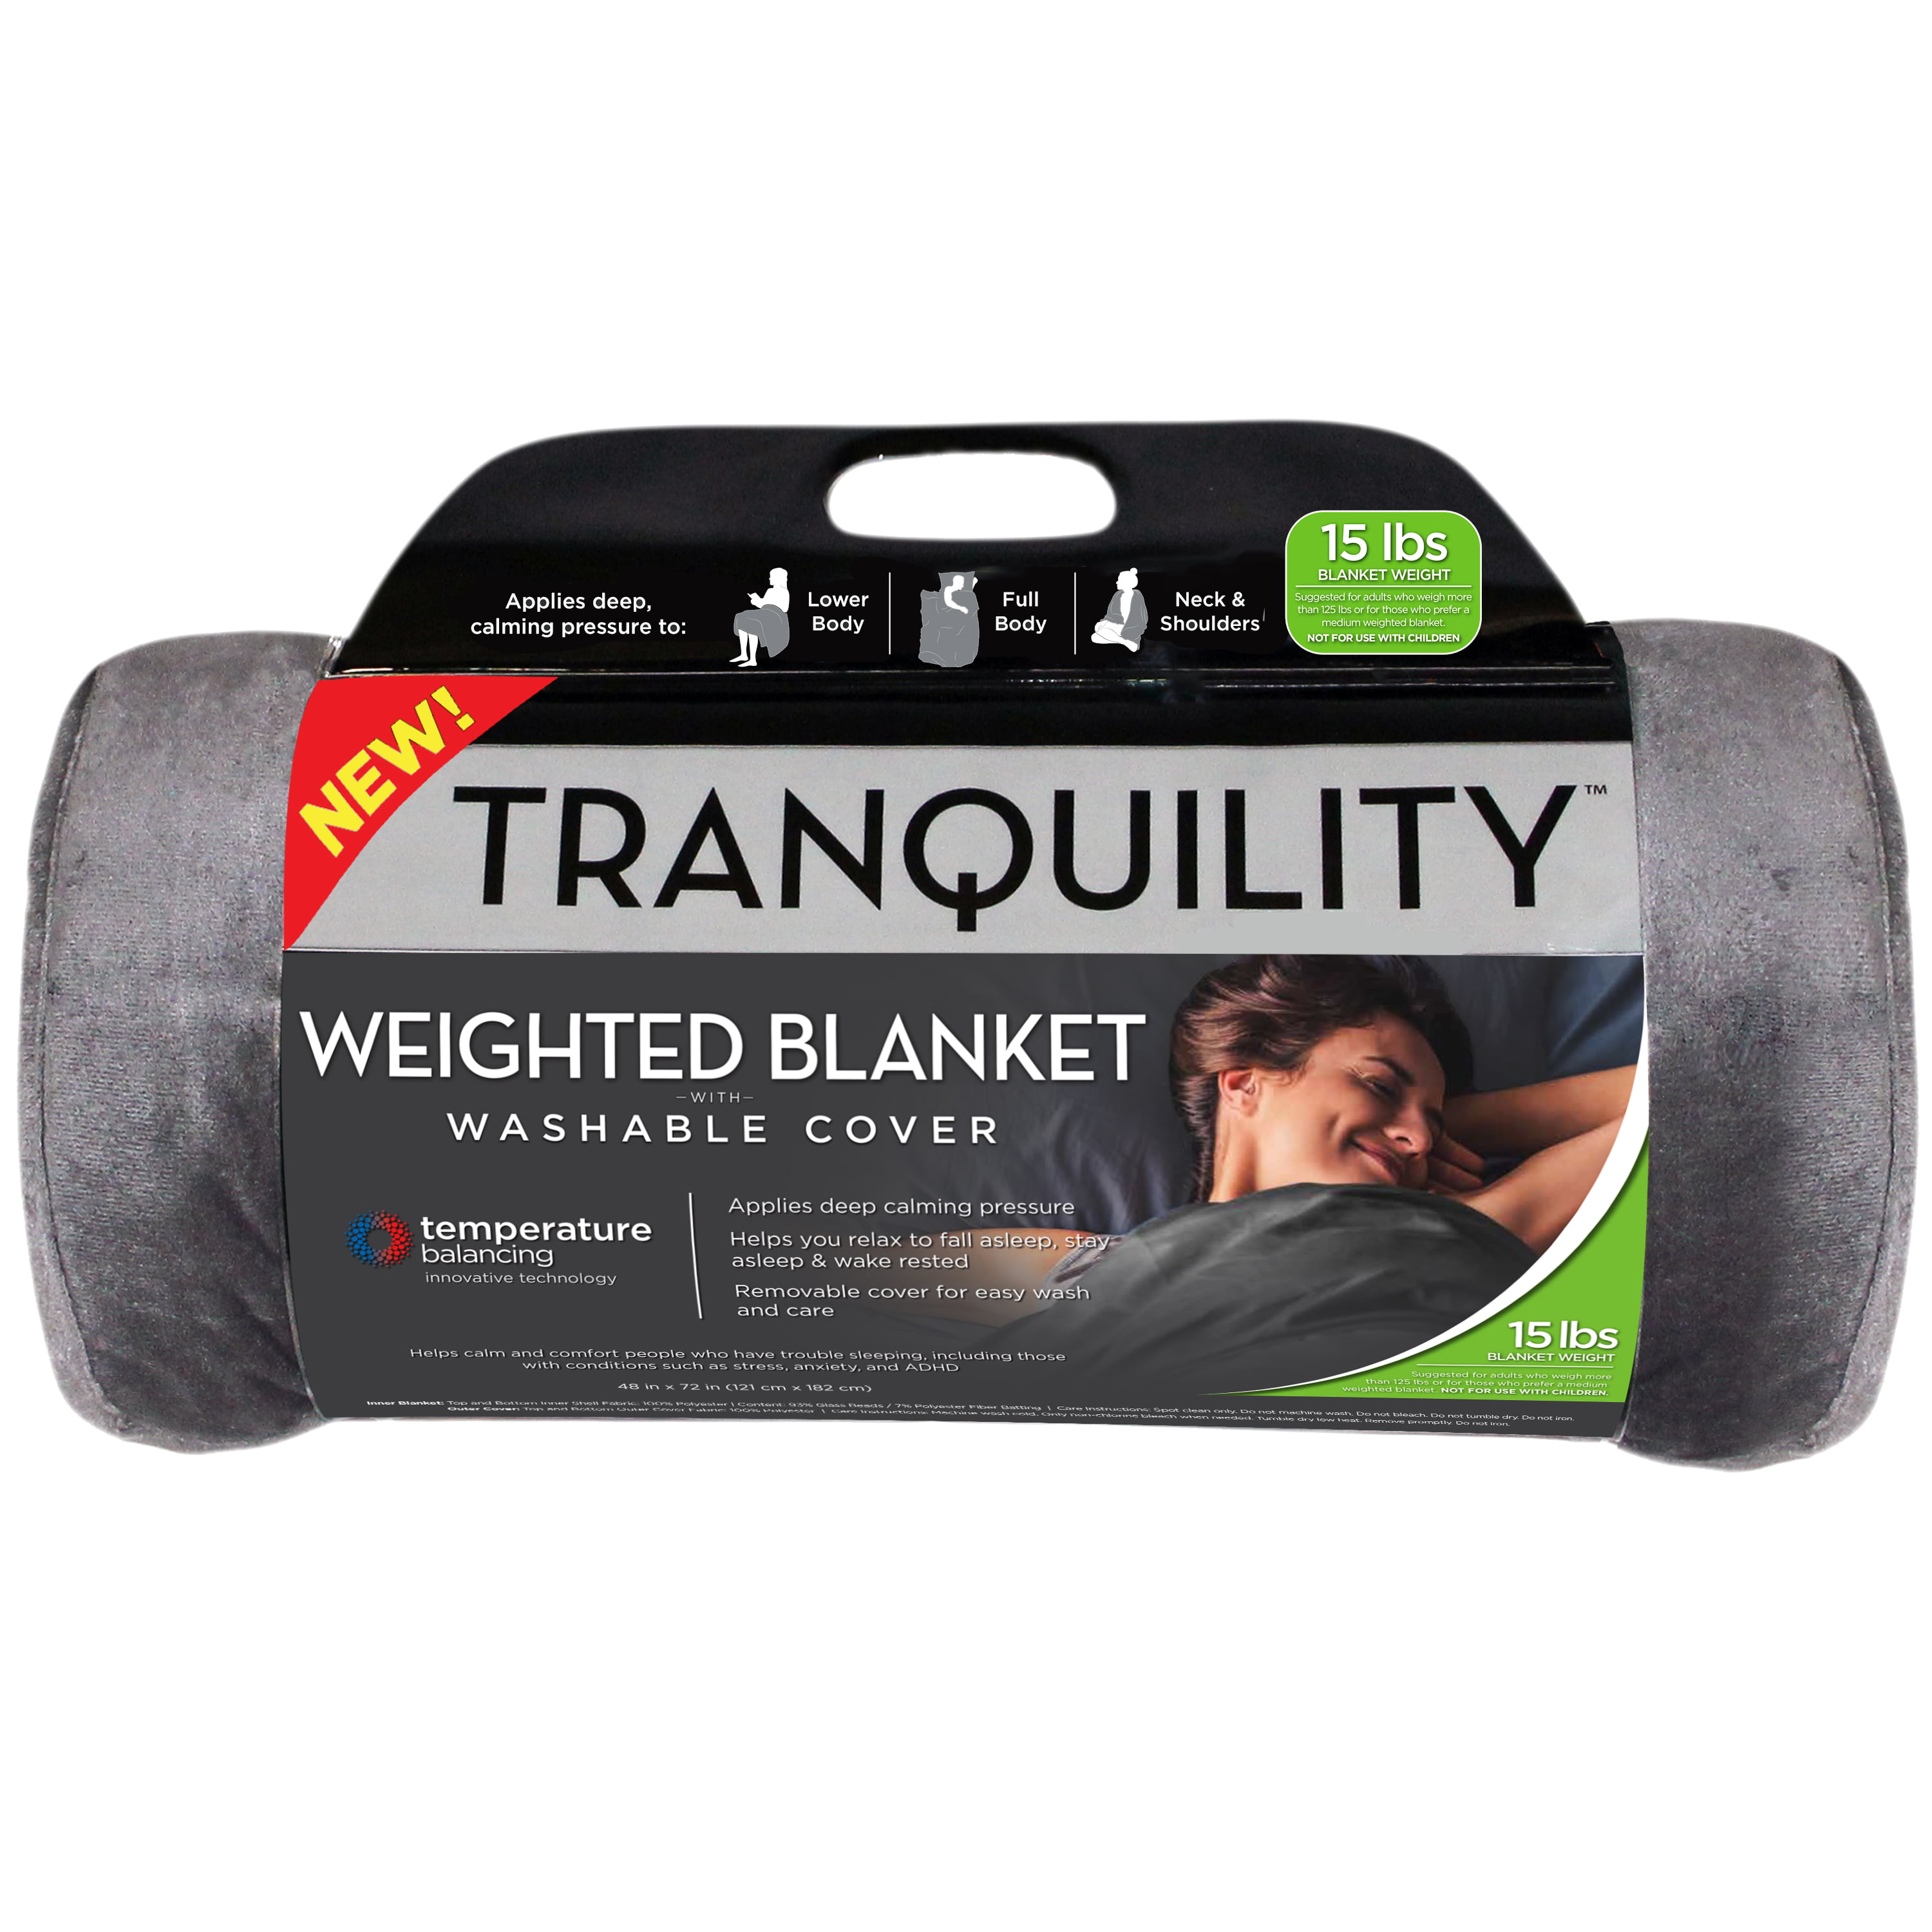 Tranquility Temperature Balancing Weighted Blanket With Washable Cover 15 Lbs Walmart Com Walmart Com